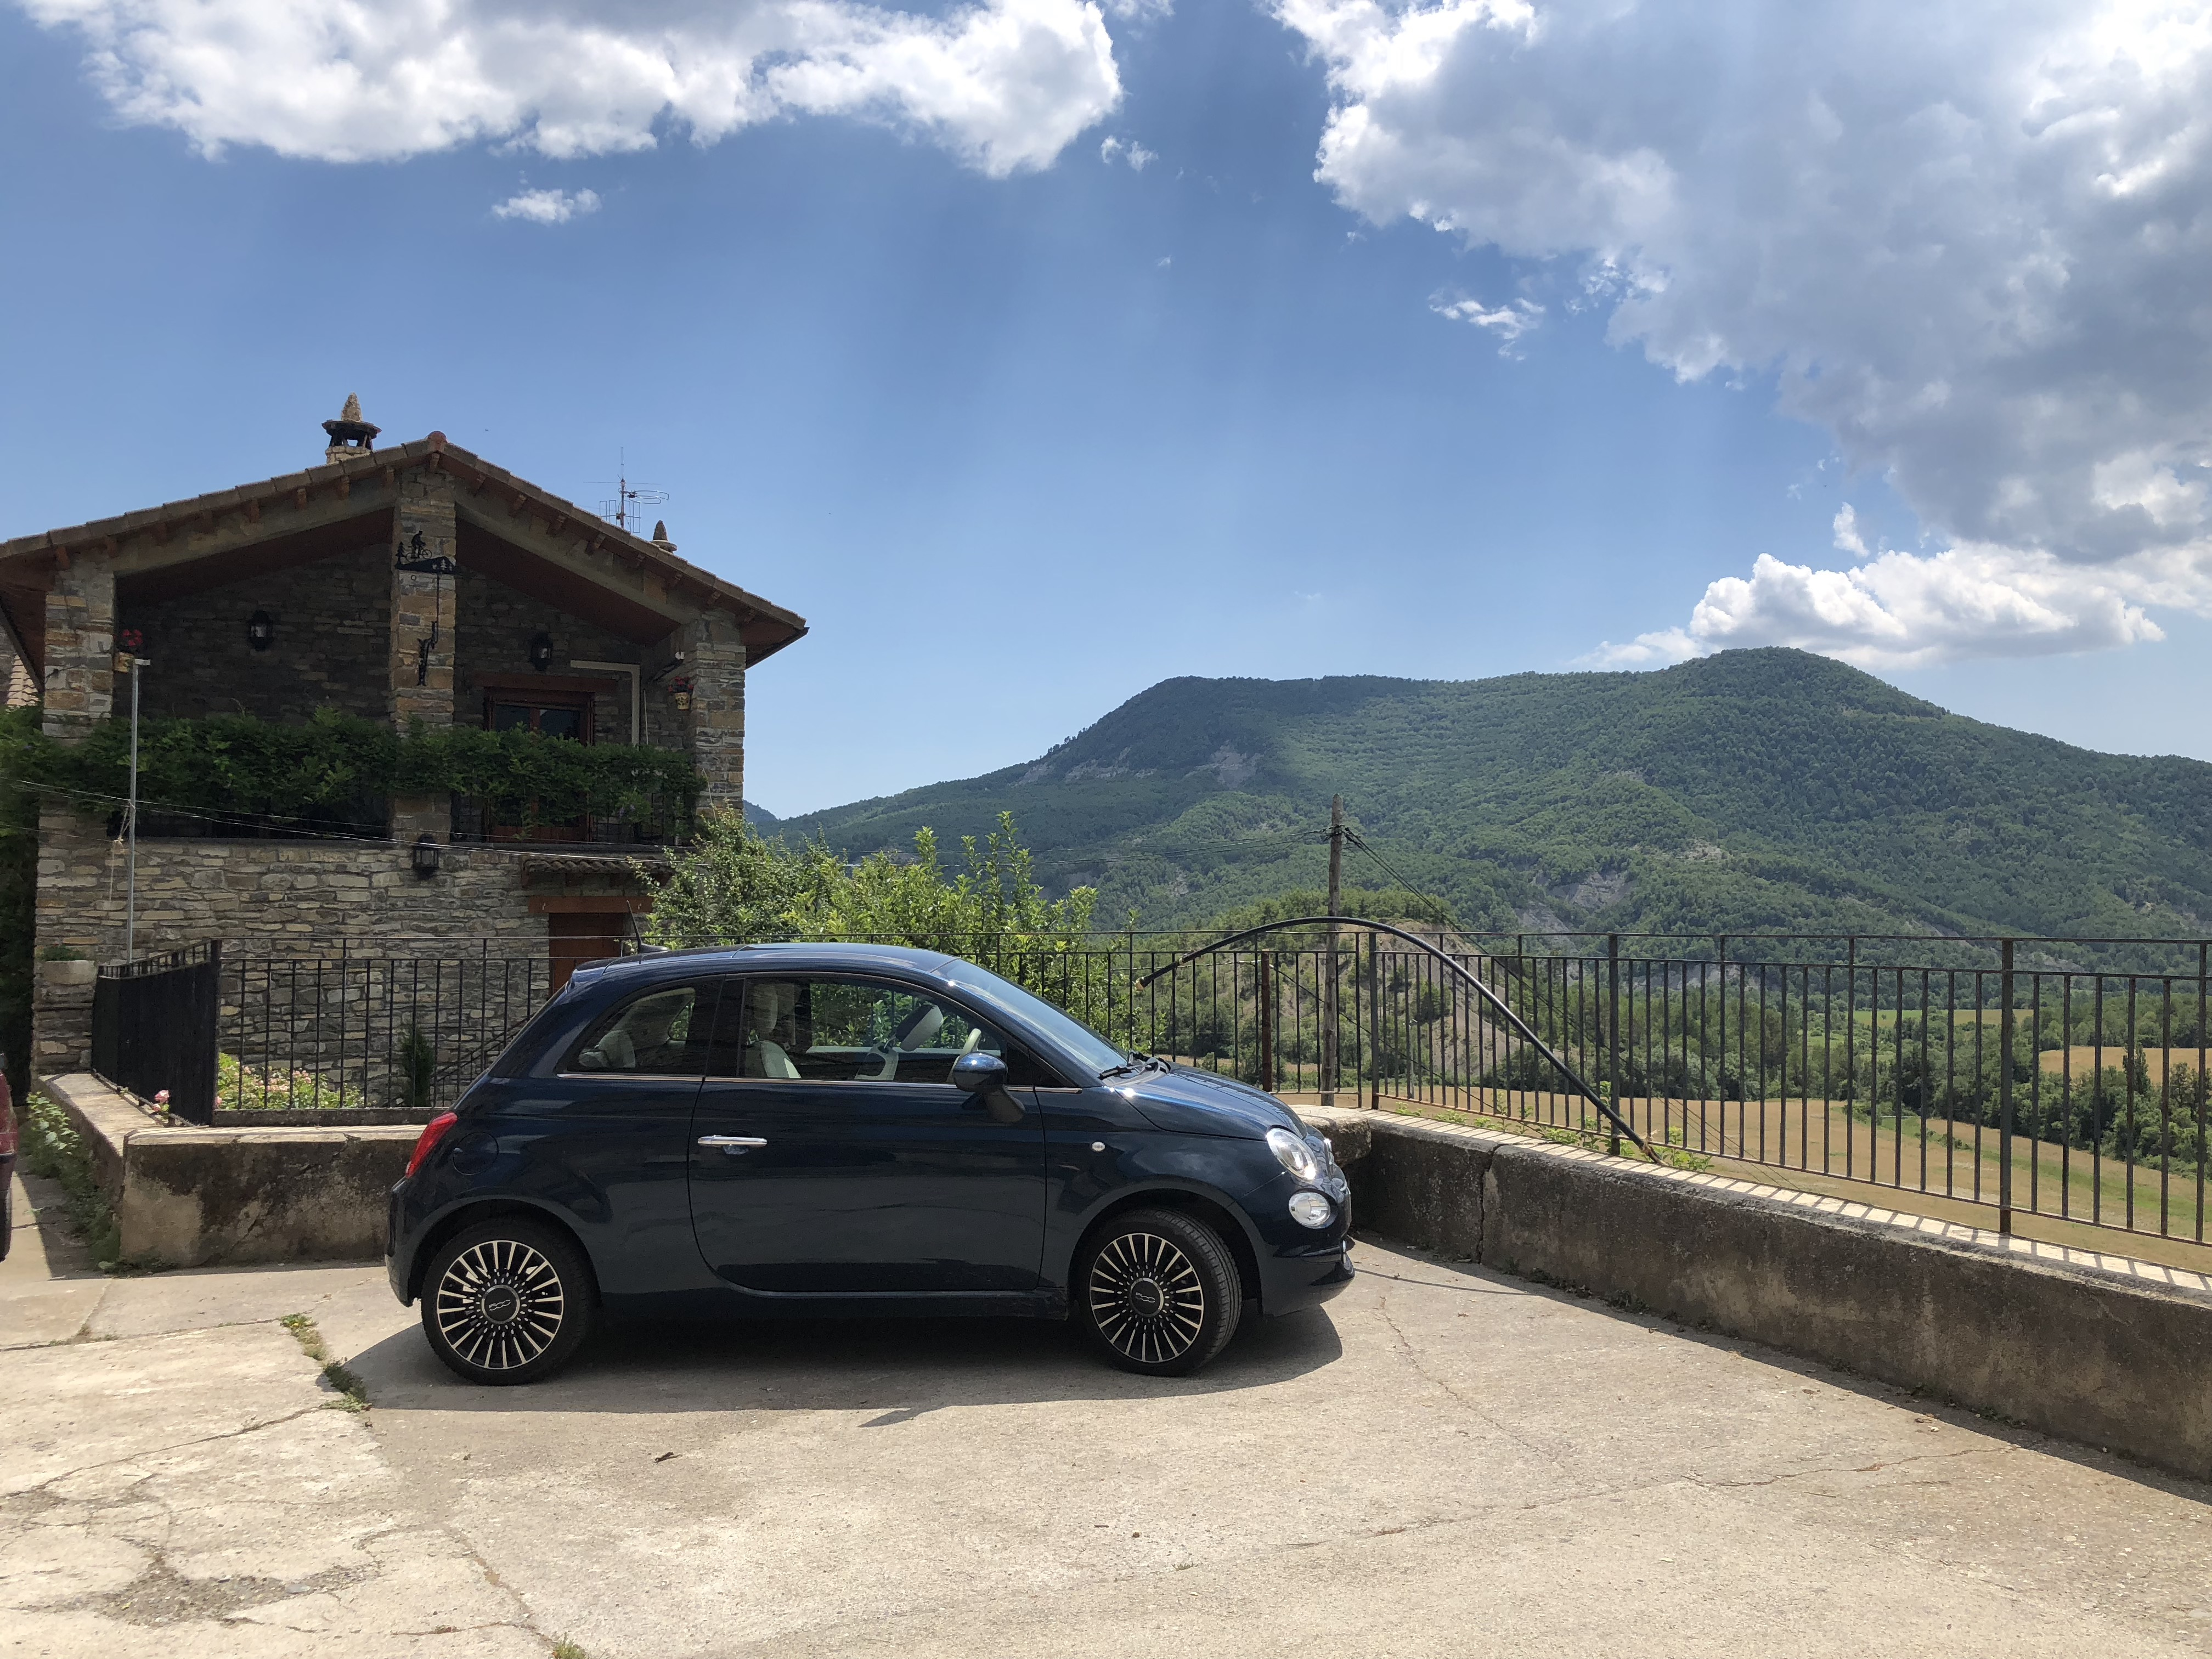 Small blue car in front of building with mountains